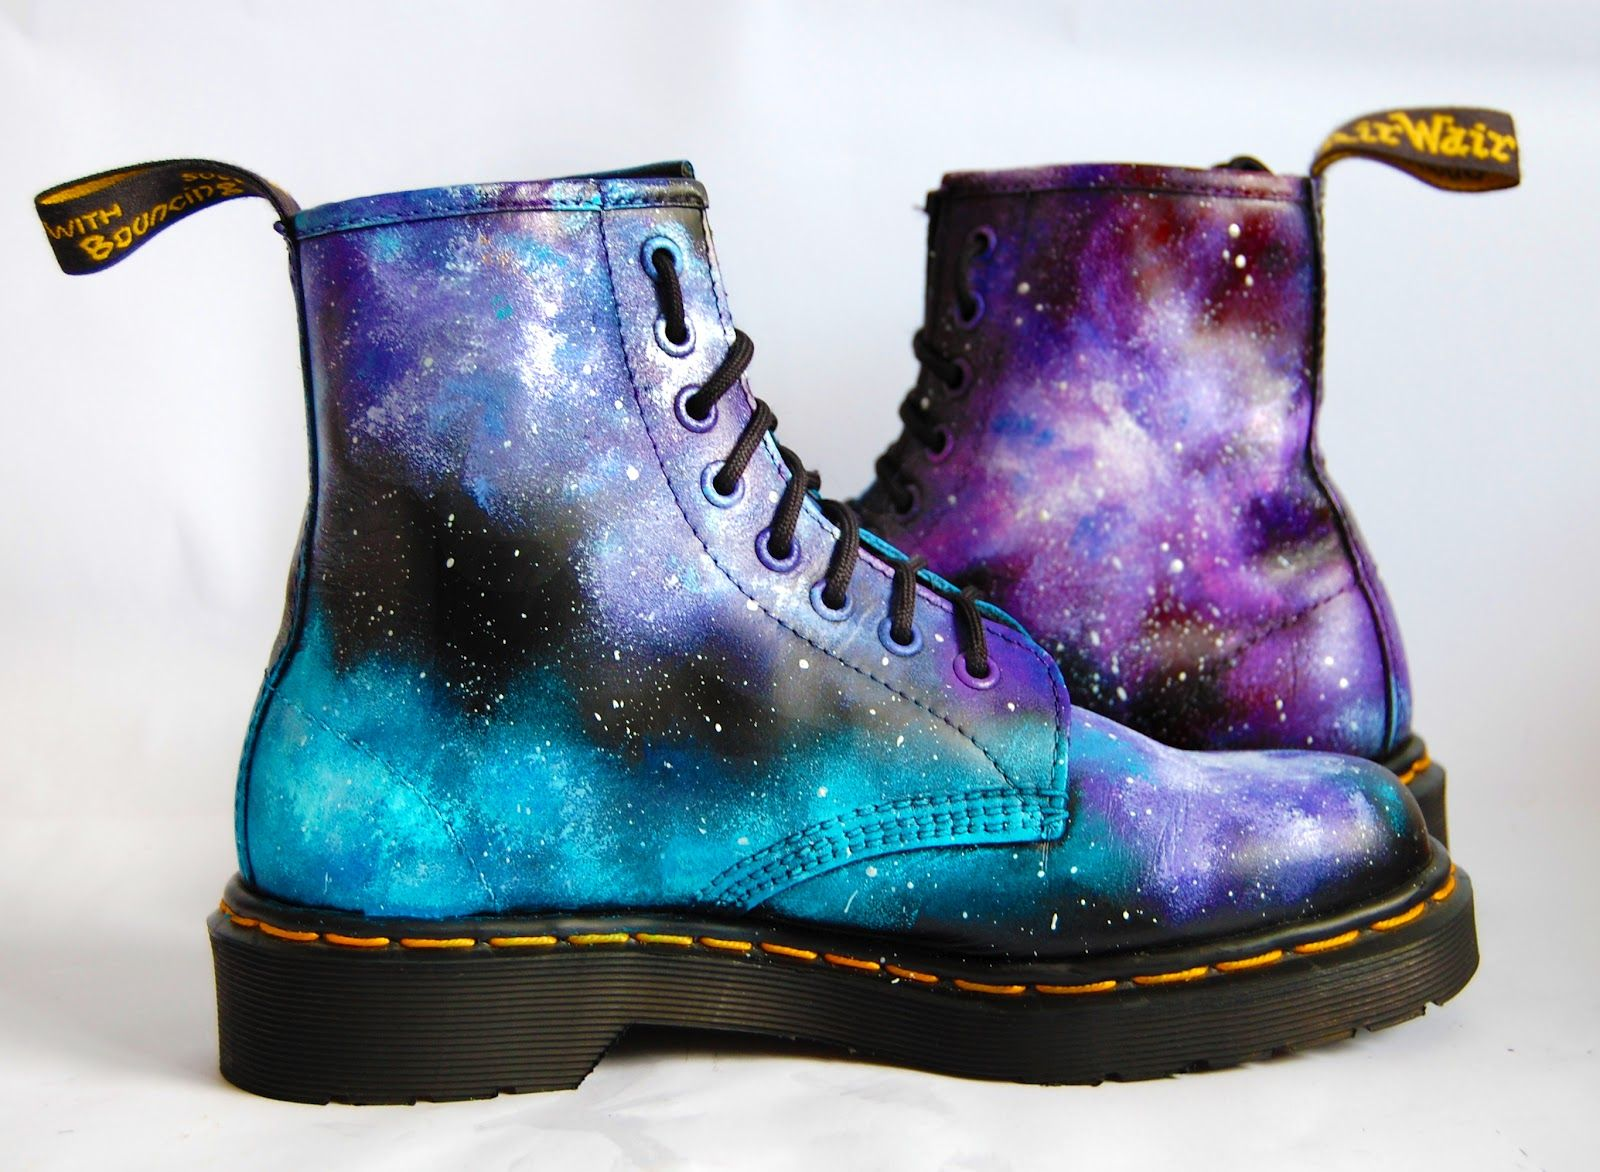 Pin by Alyssa Unger on GALAXY | Pinterest | Doc martens, Dr martens and  Clothes